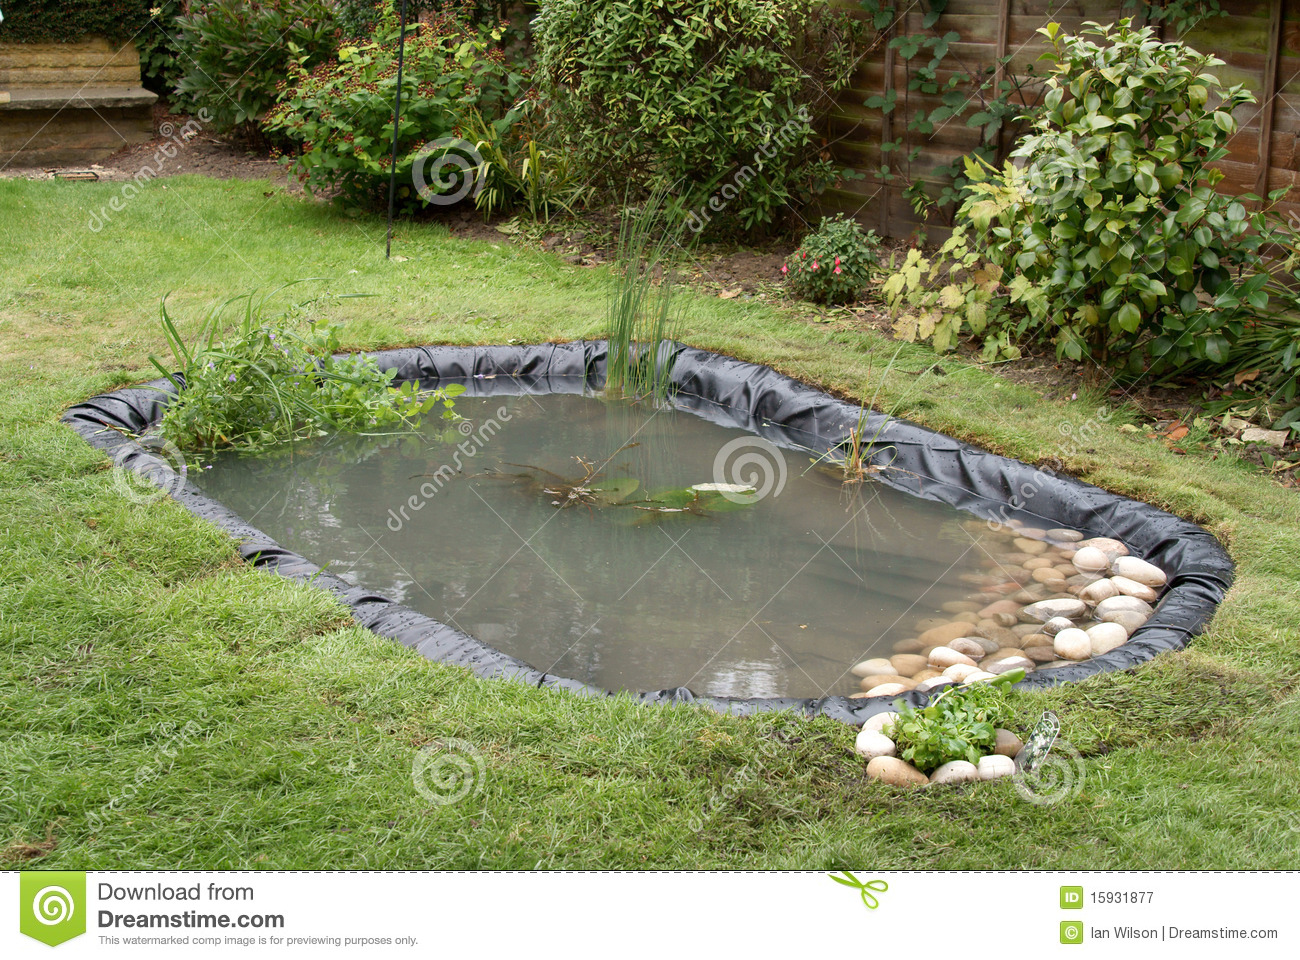 Making A Garden Pond Stock Image Image Of Lillies Rubber 15931877